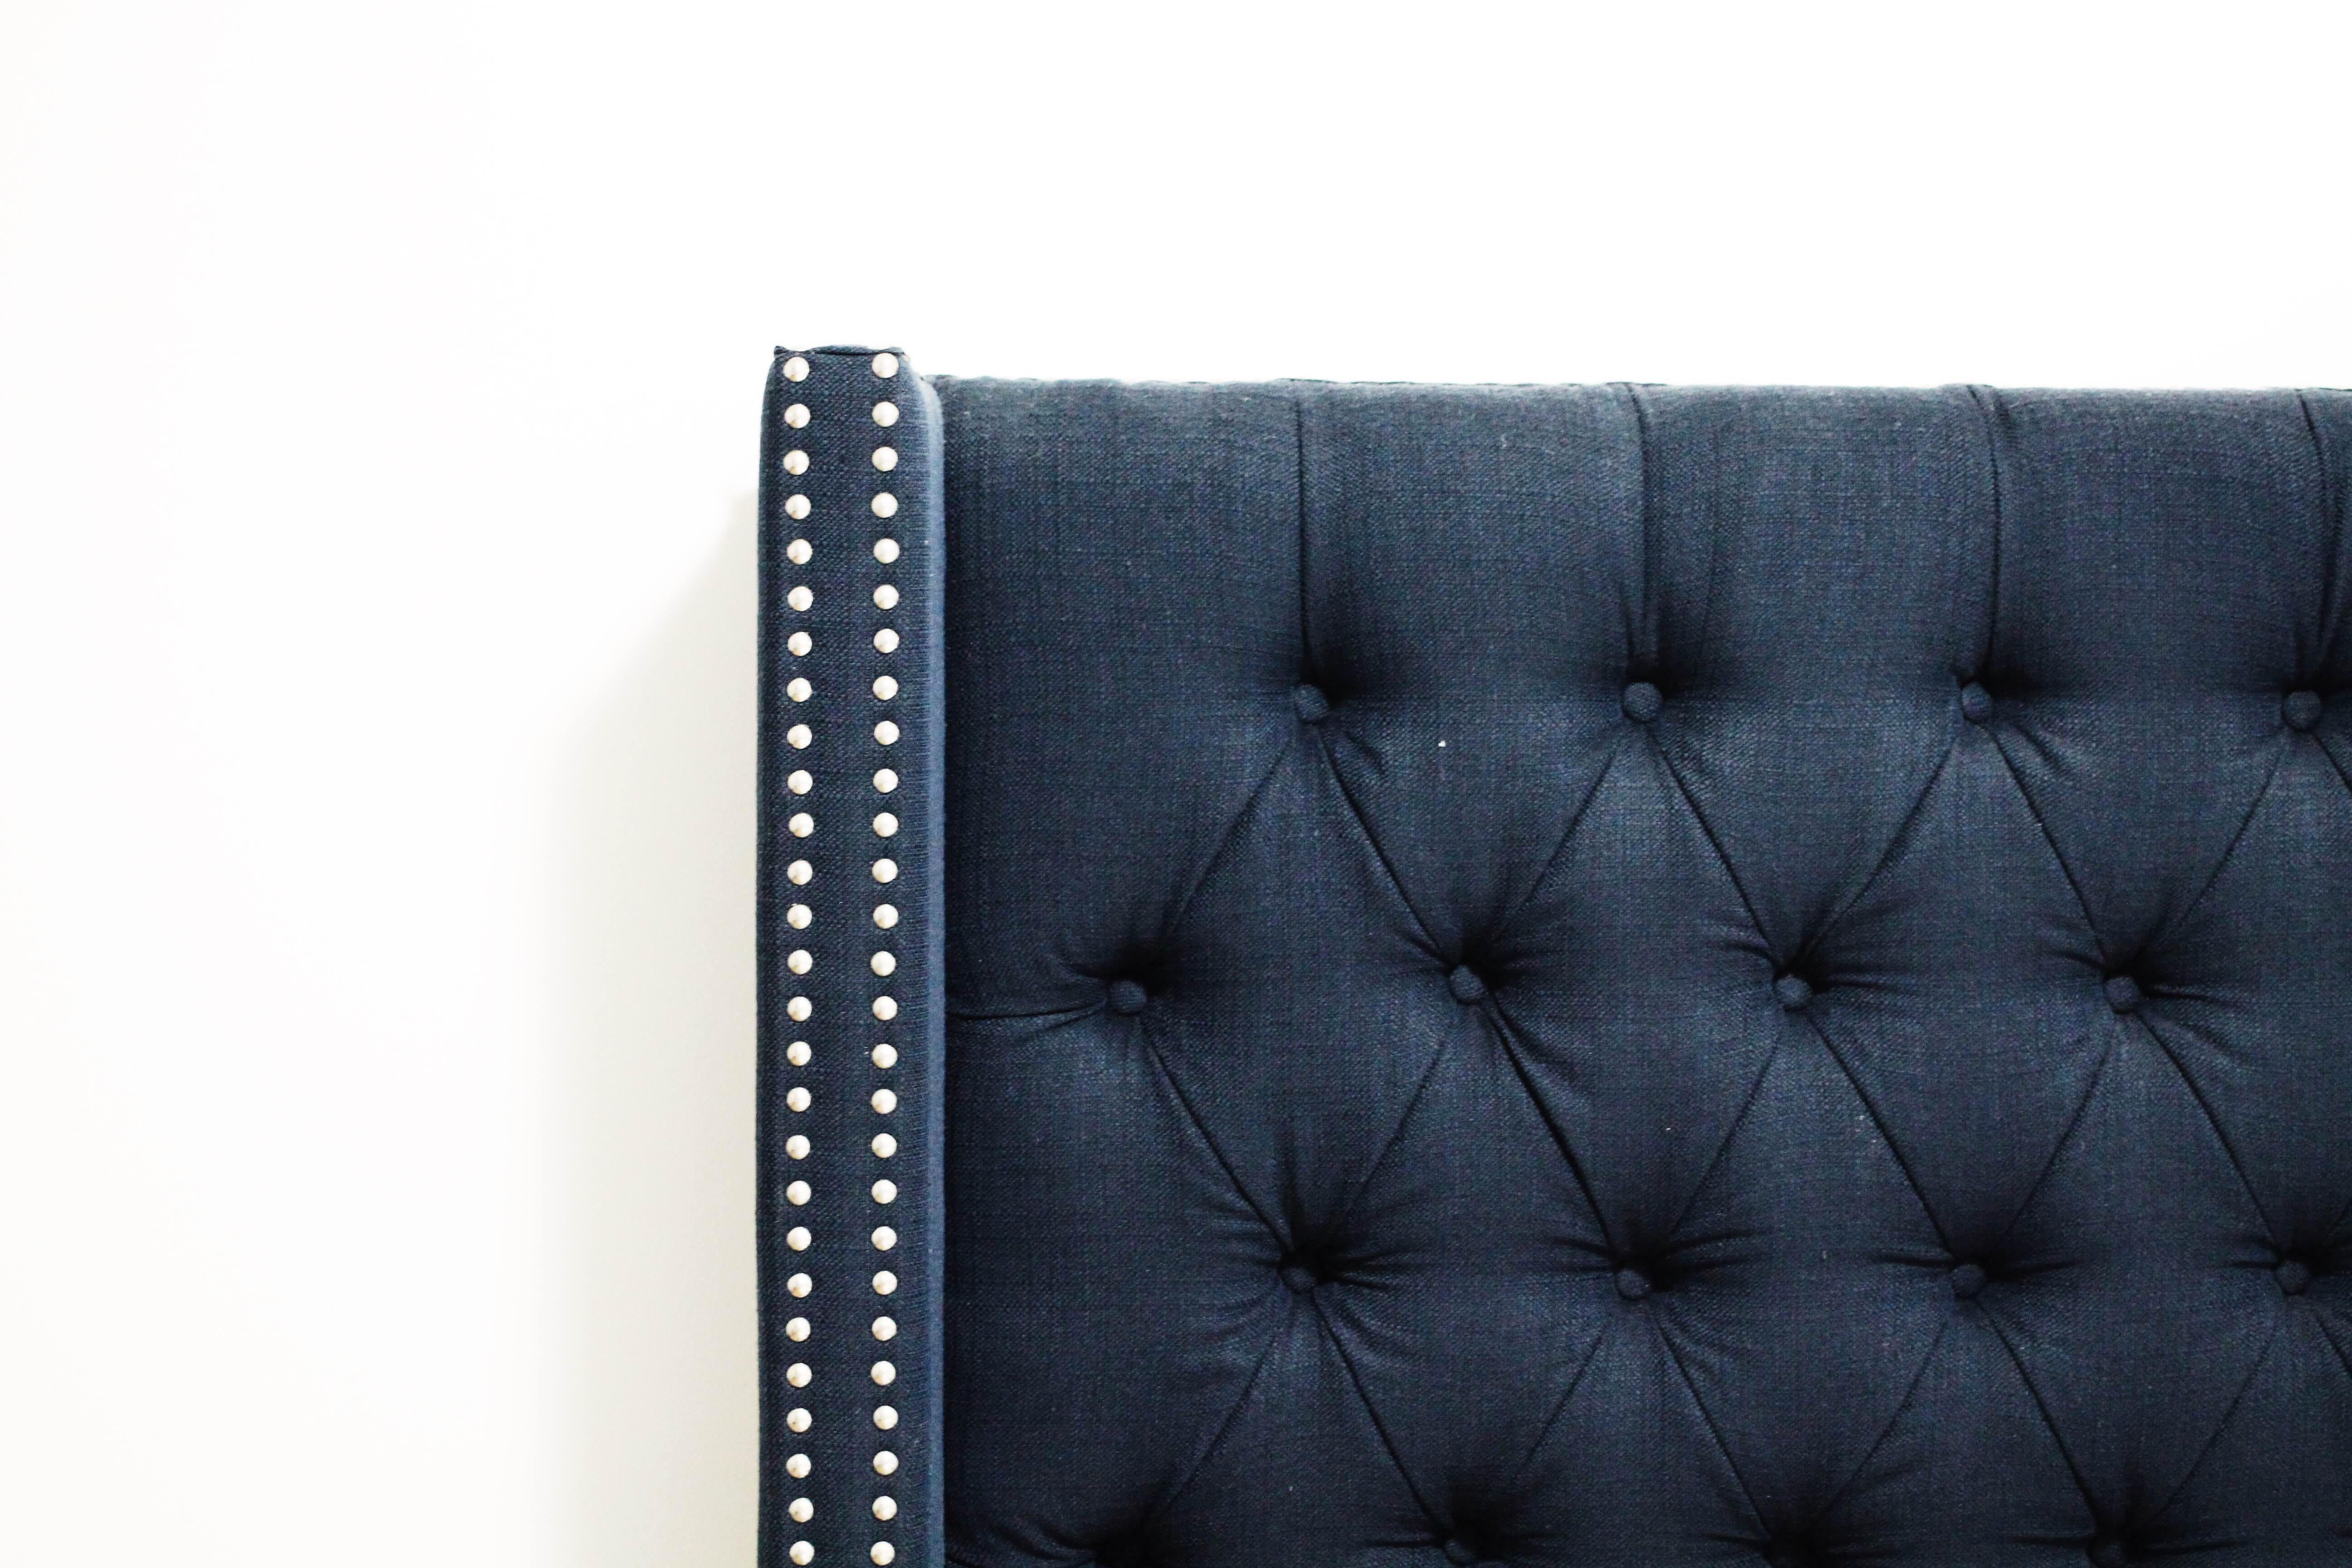 A blue chair with stud accents